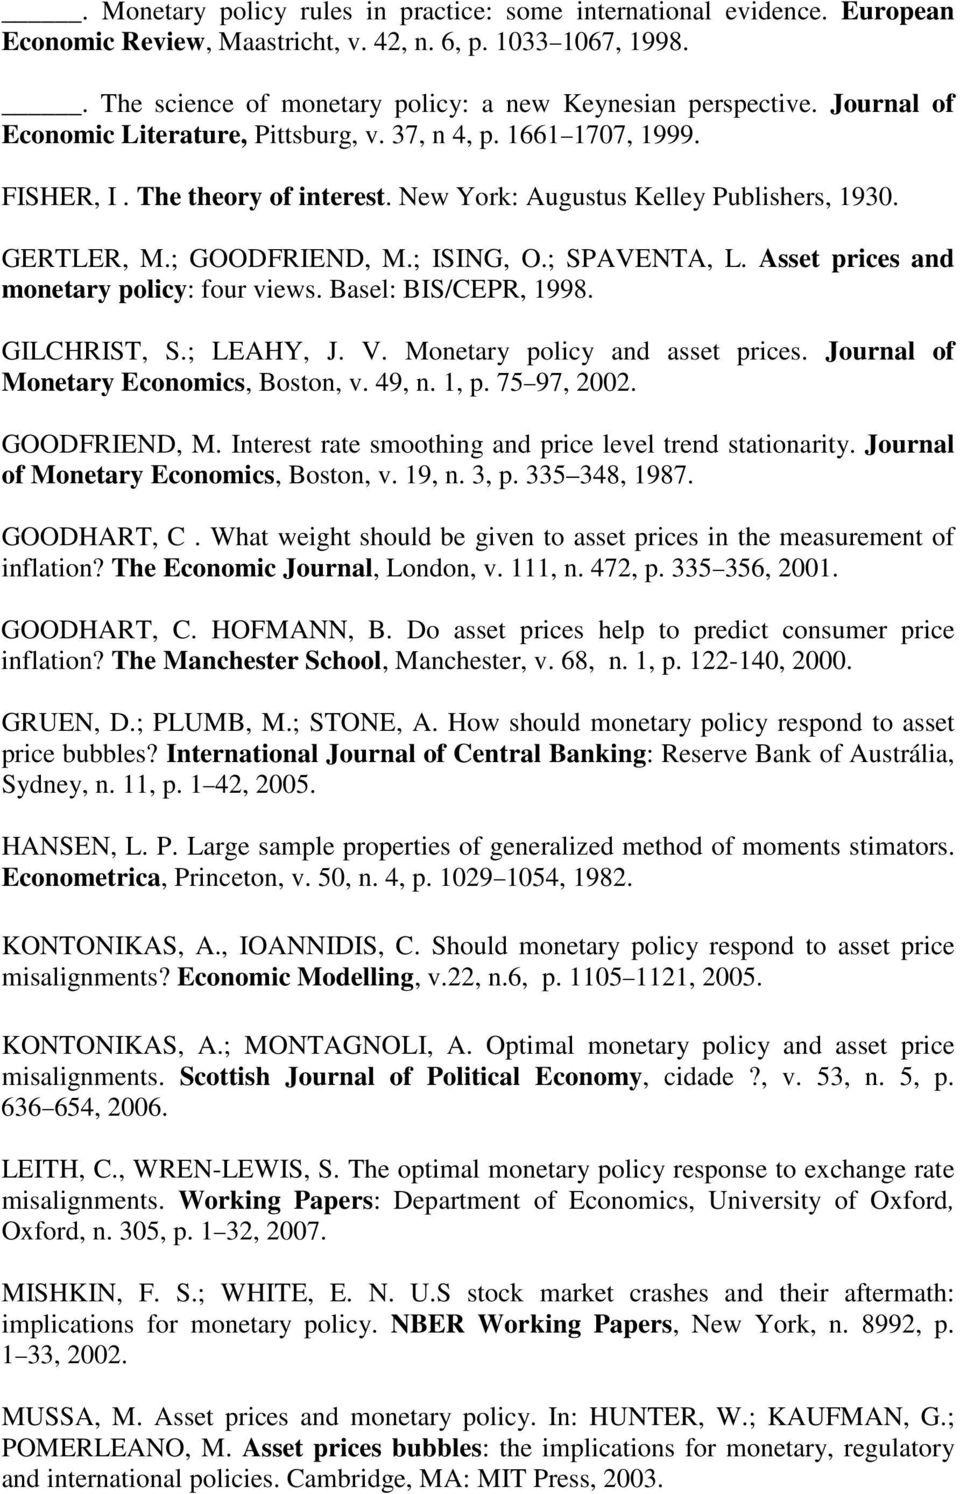 Asse prices and moneary policy: four views. Basel: BIS/CEPR, 1998. GILCHRIST, S.; LEAHY, J. V. Moneary policy and asse prices. Journal of Moneary Economics, Boson, v. 49, n. 1, p. 75 97, 2002.